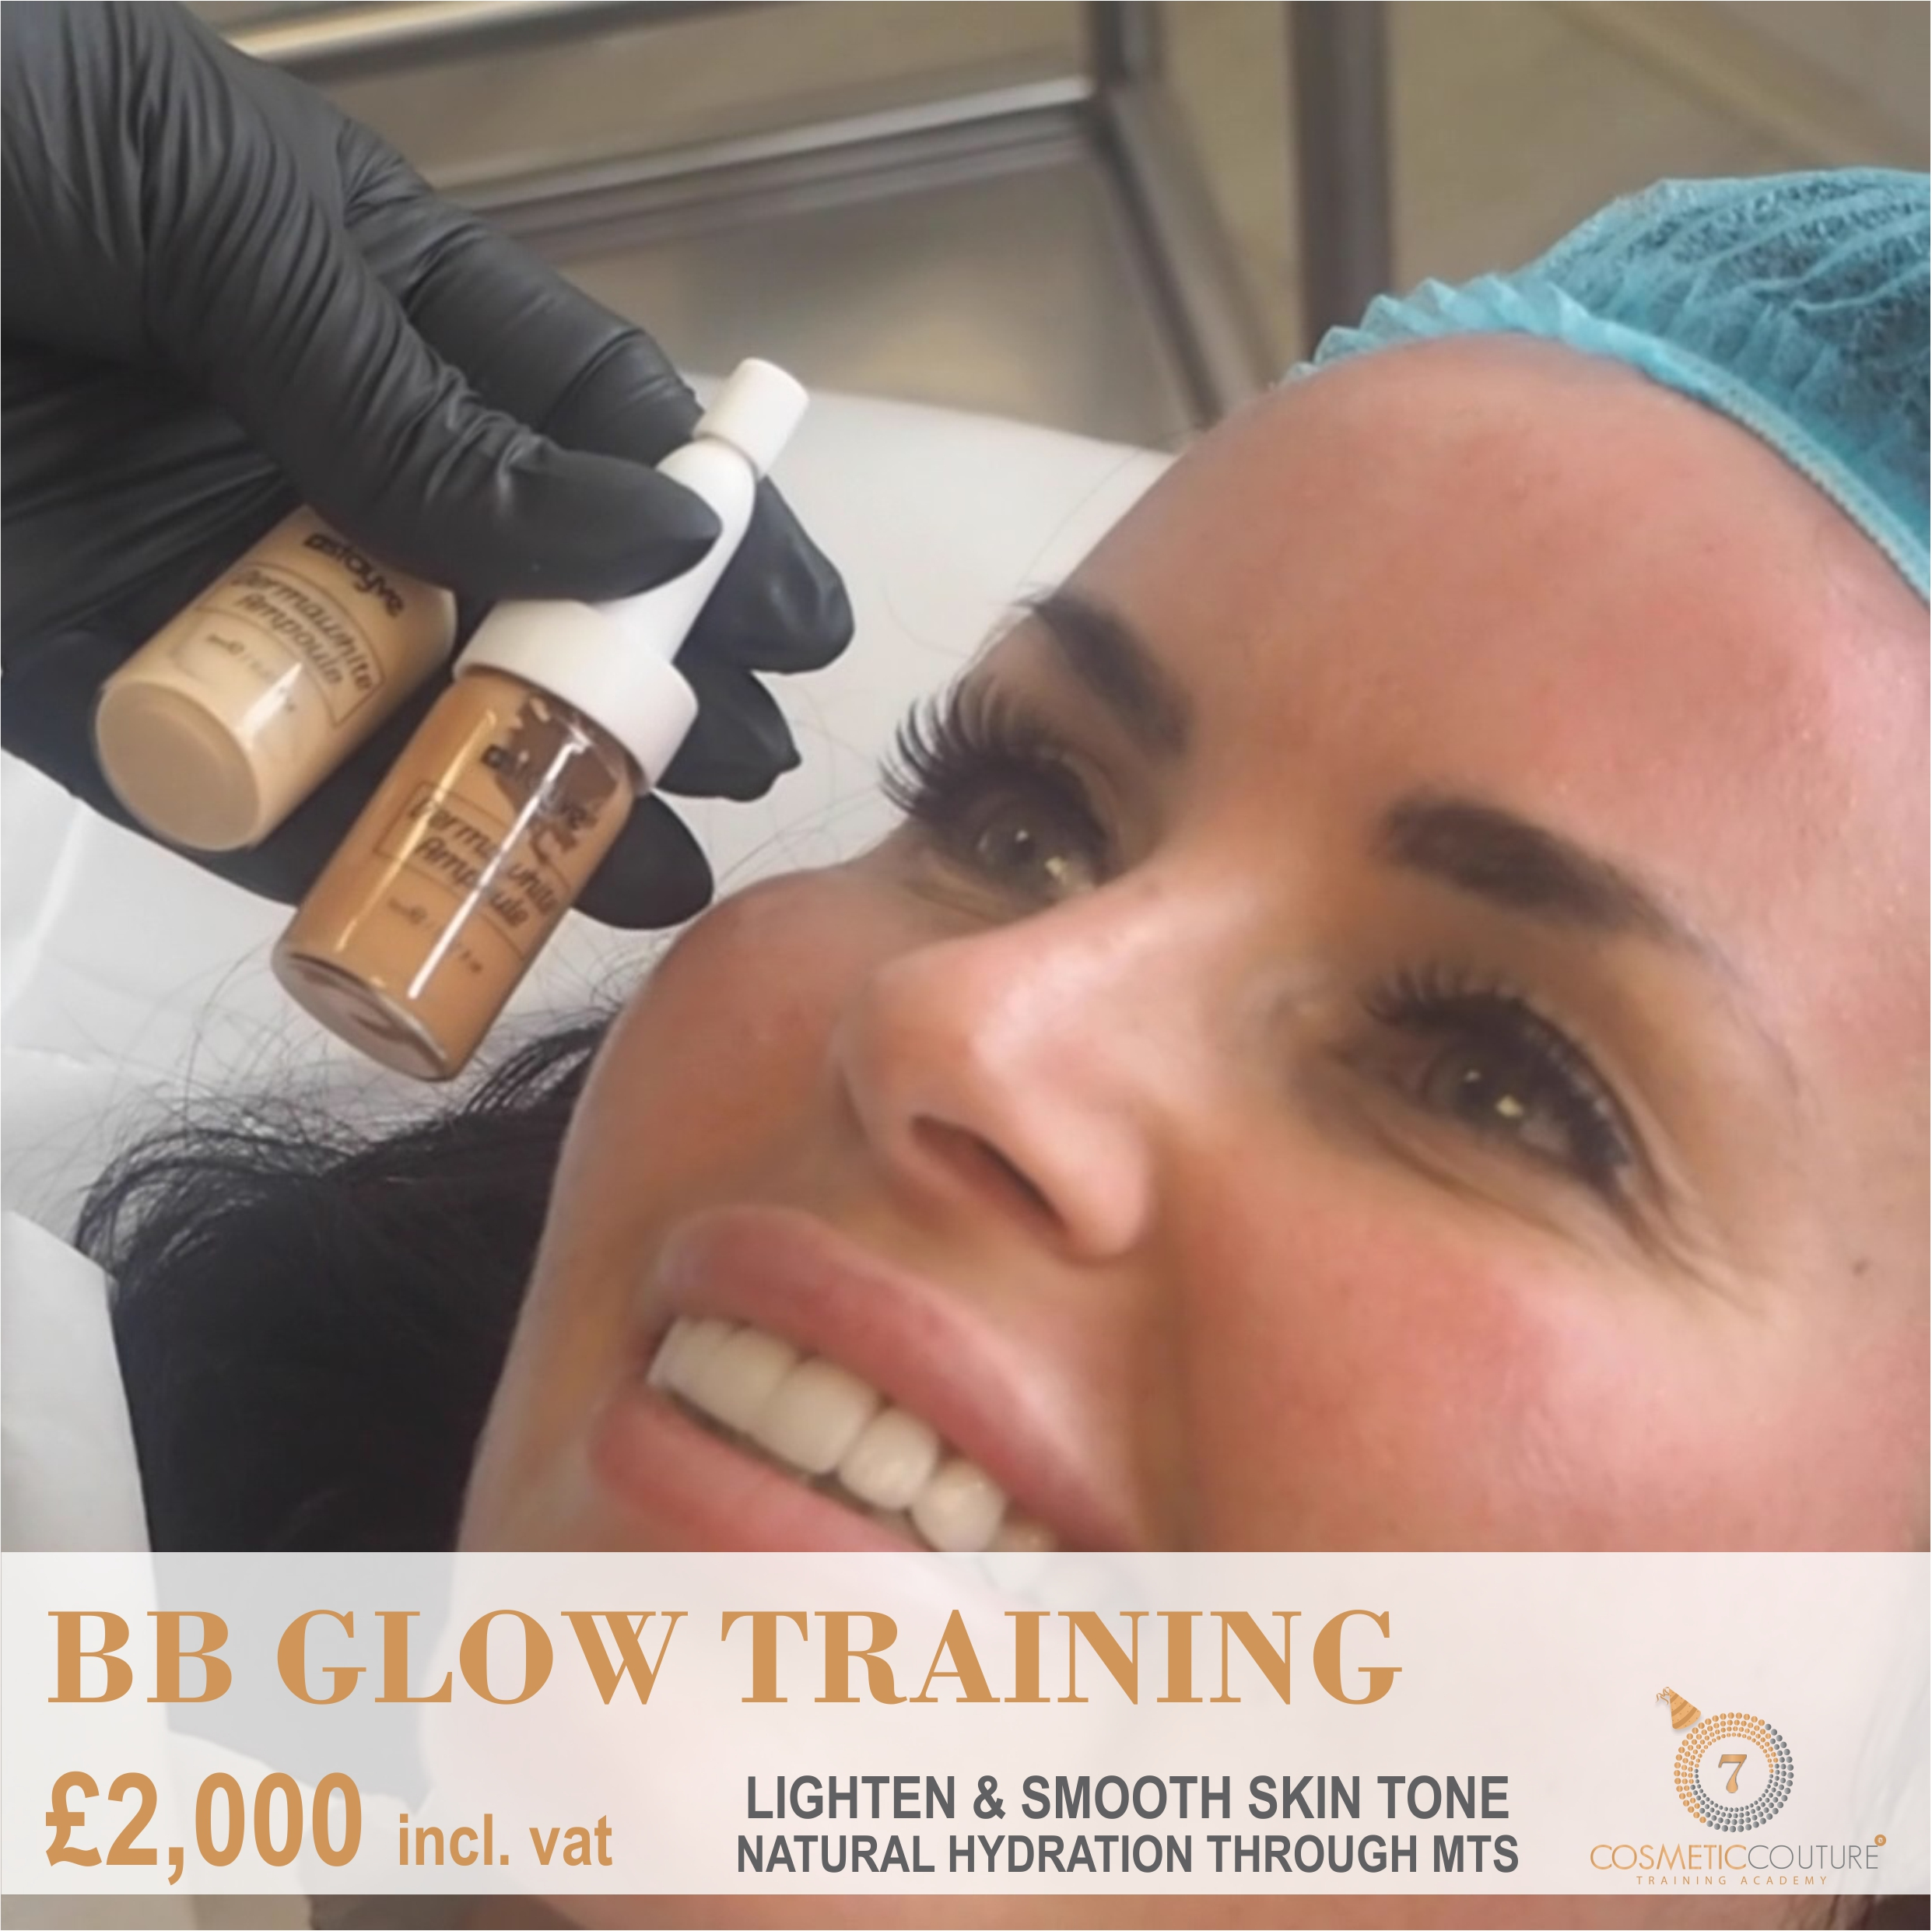 BB GLOW TRAINING COURSE - Cosmetic Couture